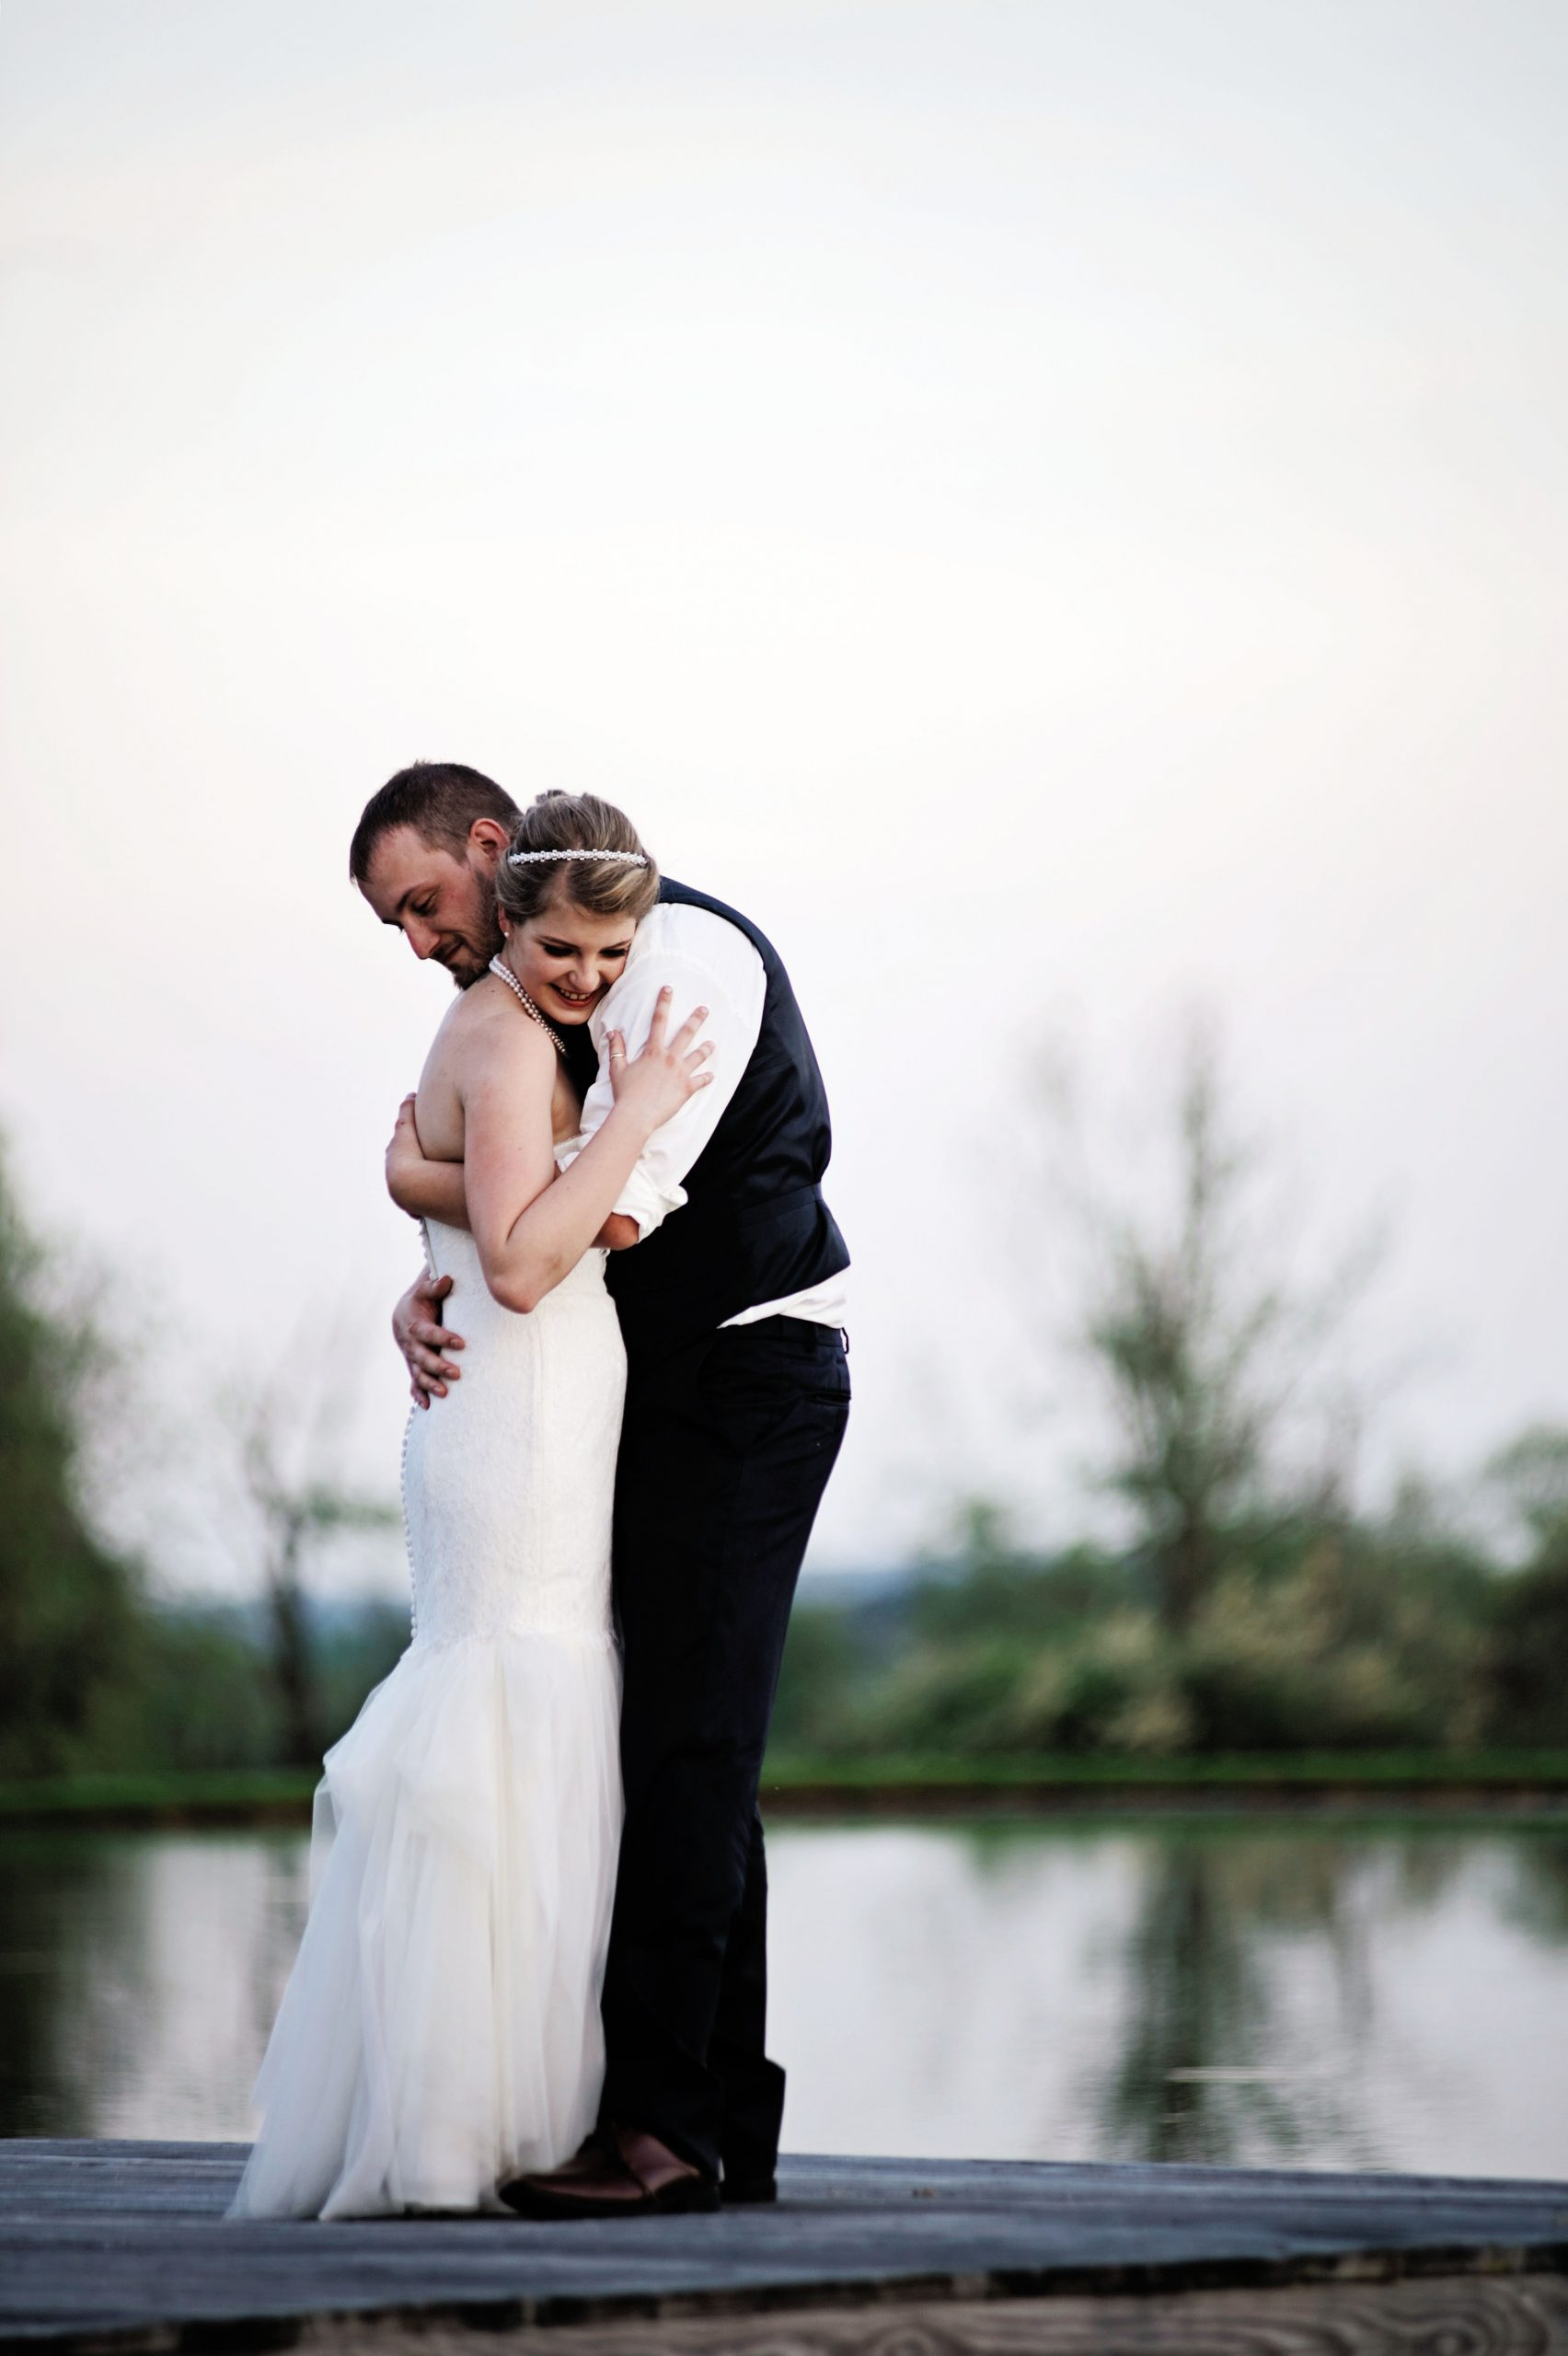 Kady and Ricky celebrate their marriage at Lakeview Farms in York, PA with photo session by Lovefusion at dusk on the dock. Featured on Dream Weddings.